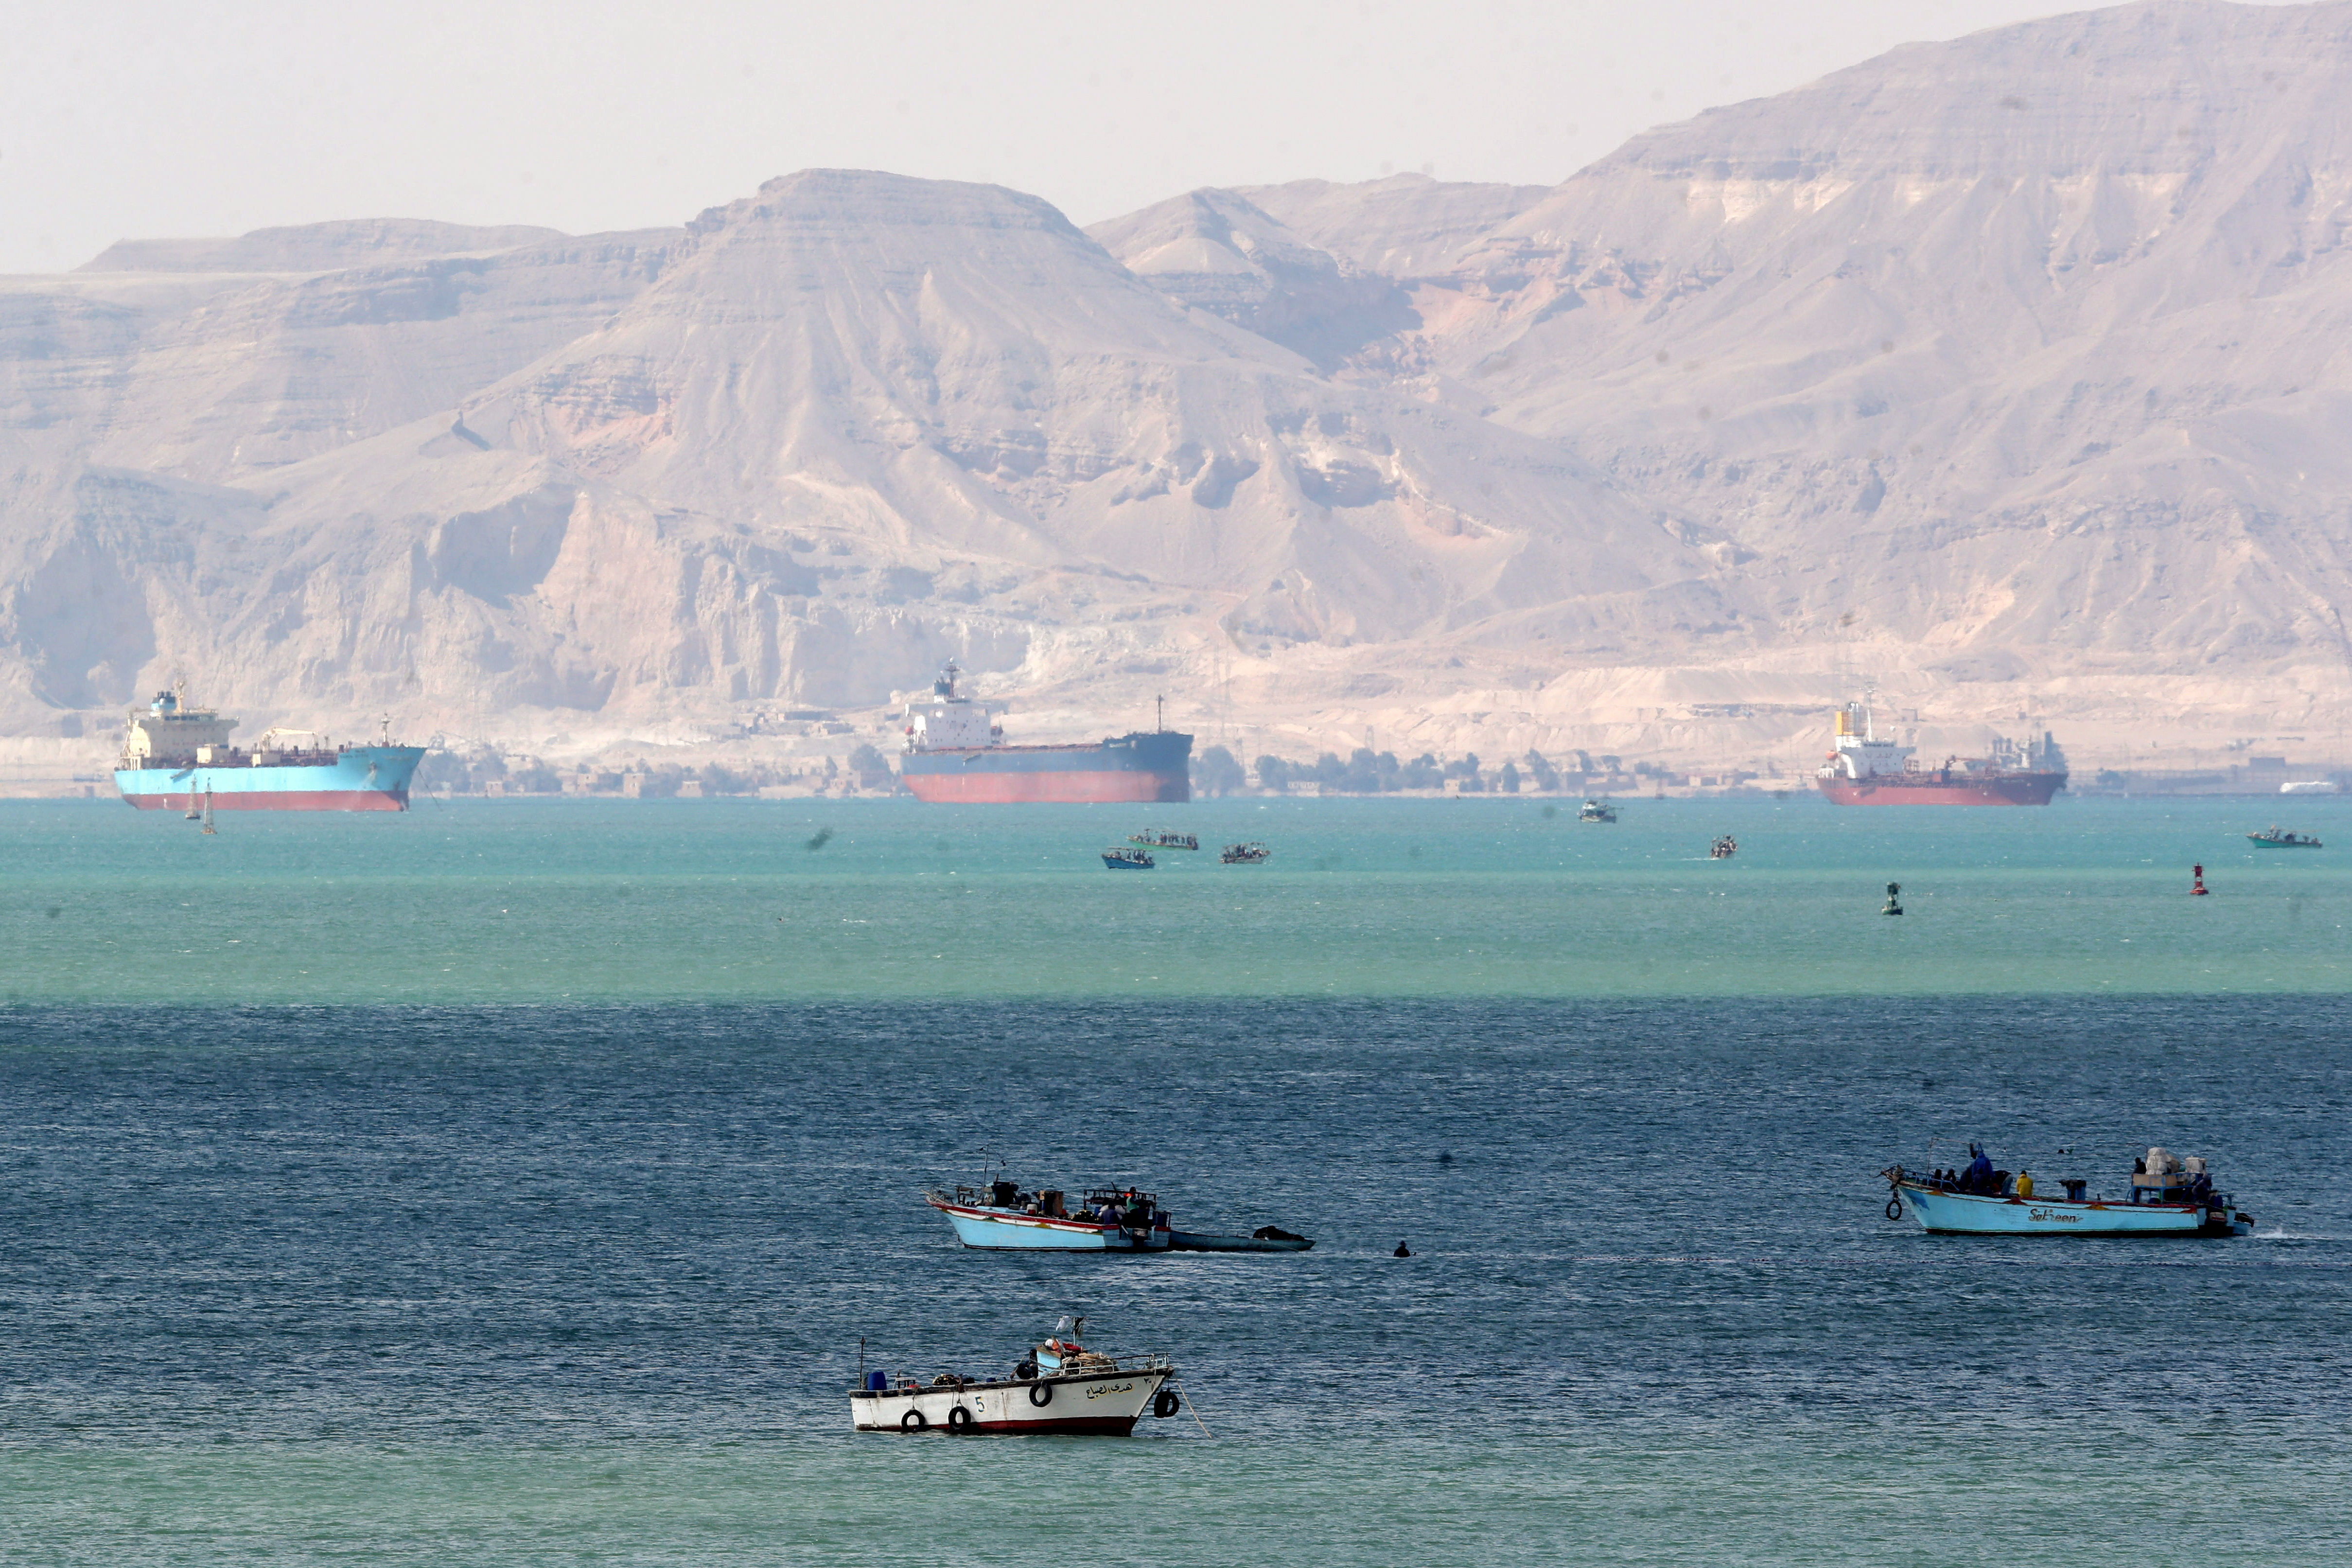 Ships and boats are seen at the entrance of Suez Canal, which was blocked by stranded container ship Ever Given that ran aground, Egypt March 28, 2021. REUTERS/Mohamed Abd El Ghany